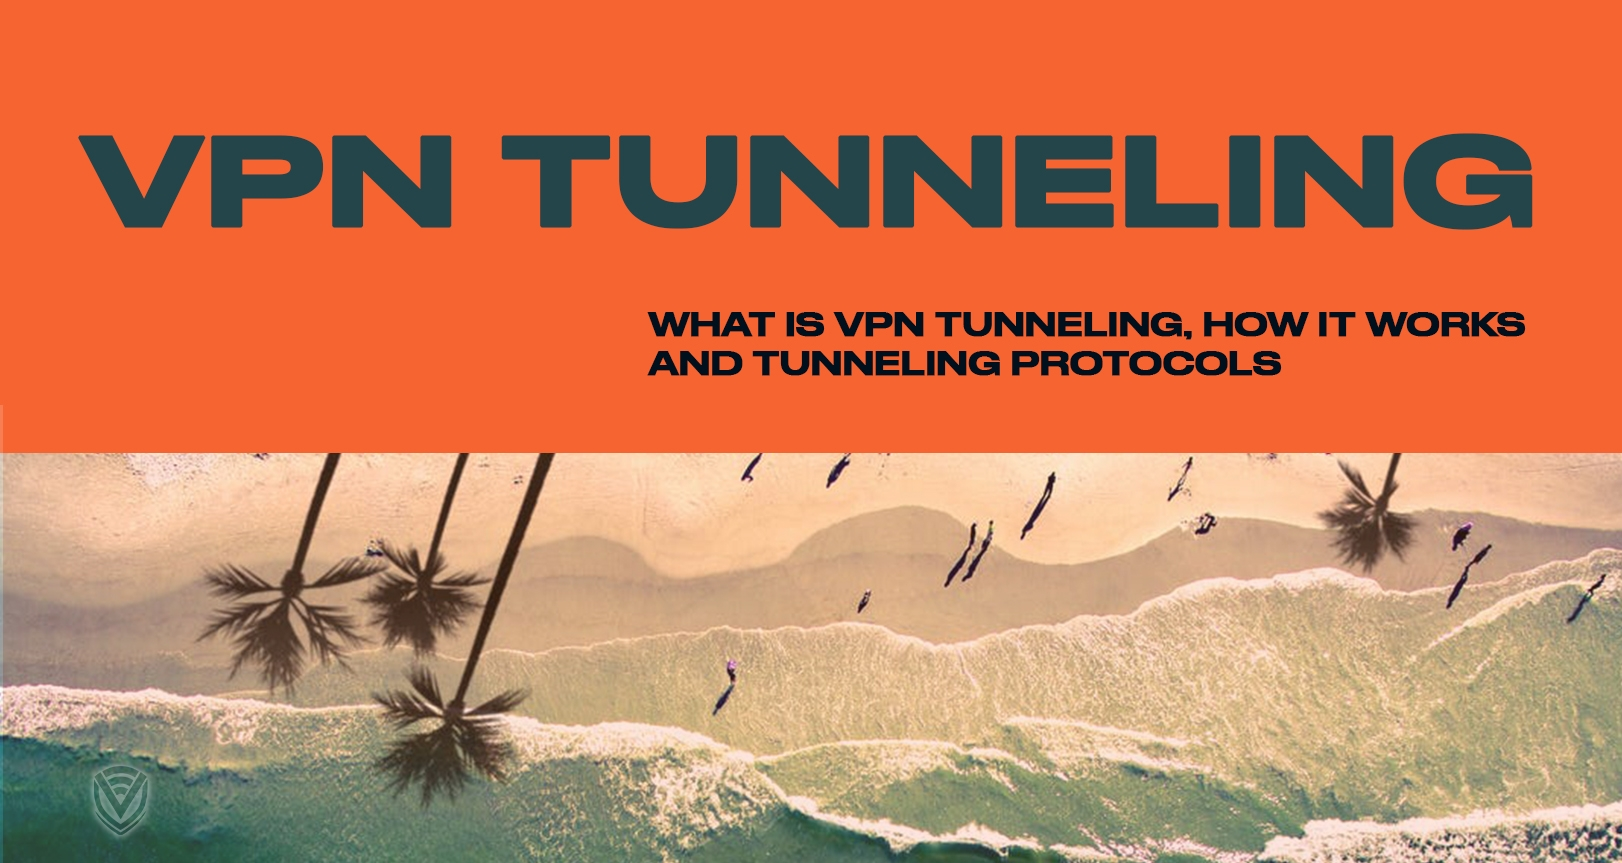 VPN Tunneling: An Untraceable Firewall